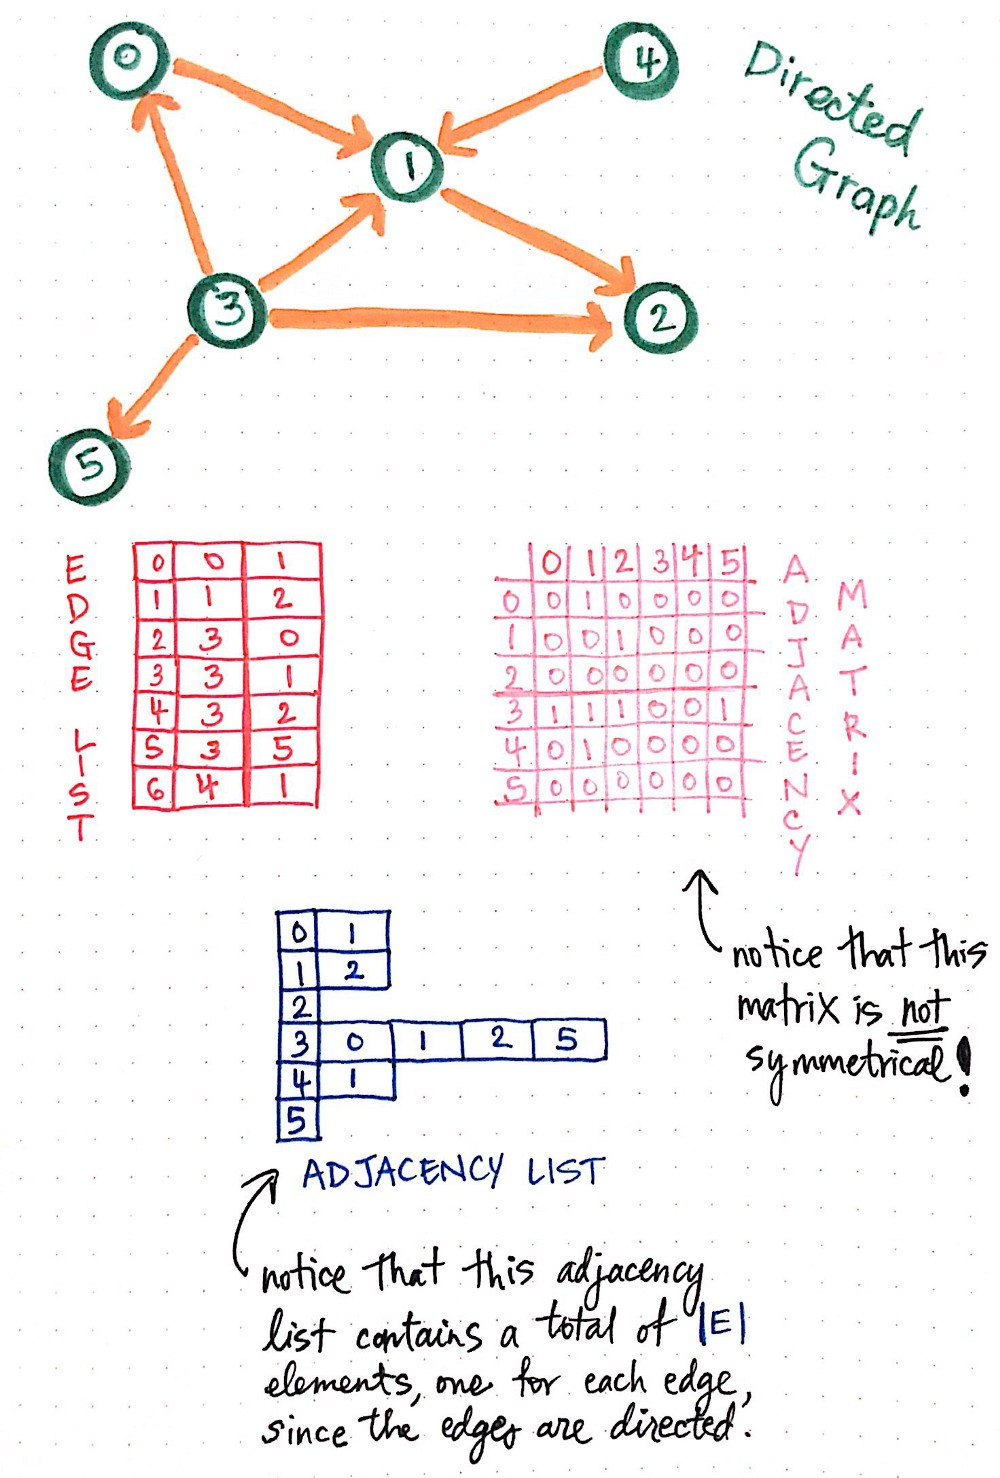 From Theory To Practice: Representing Graphs - basecs - Medium